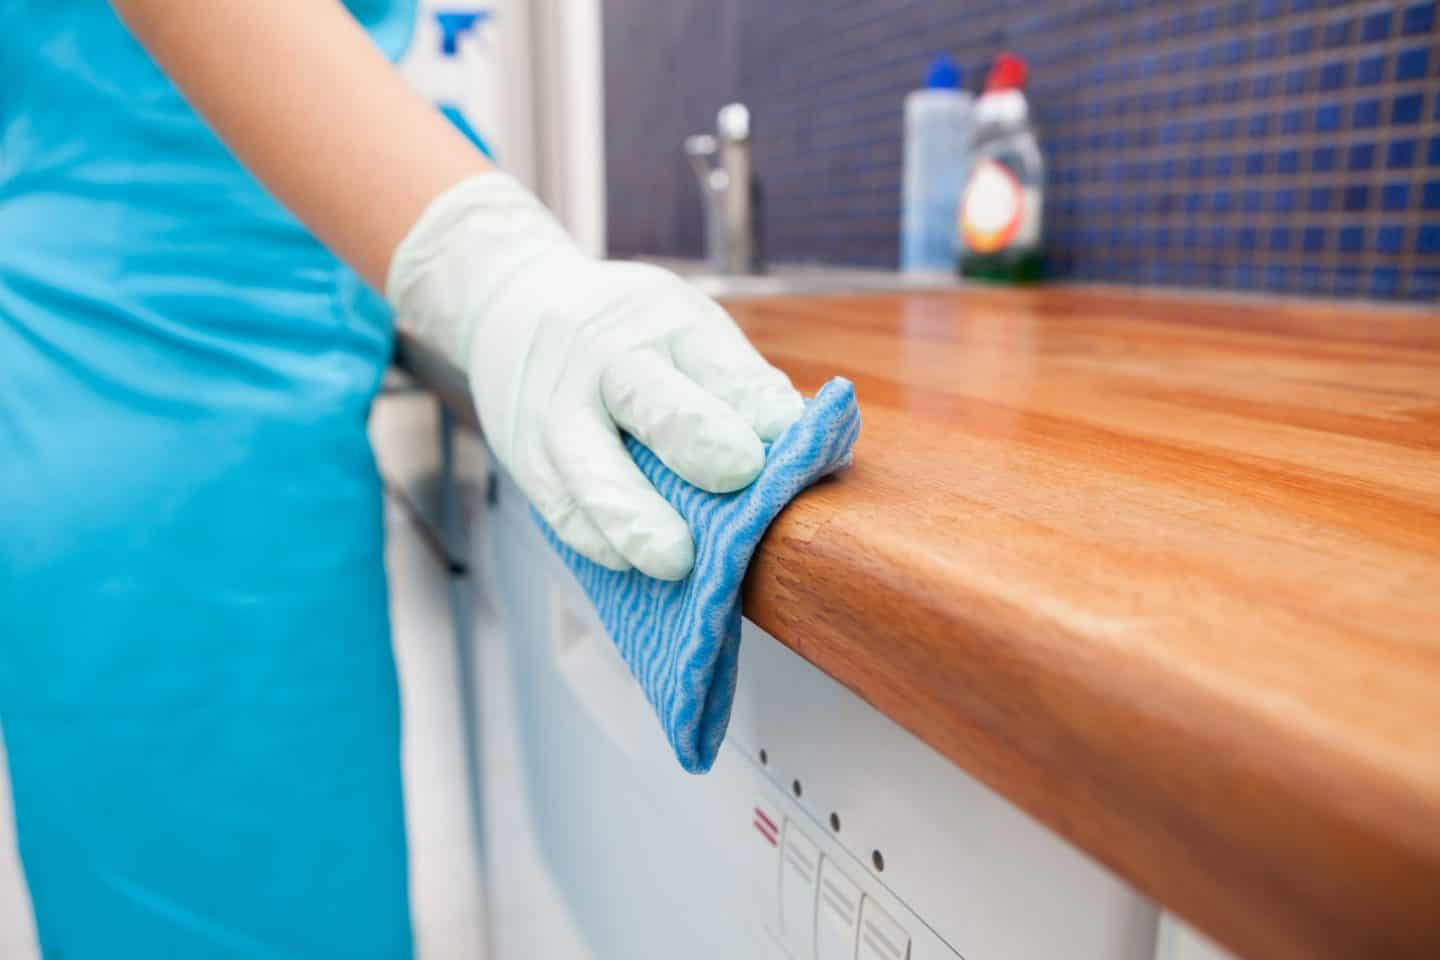 Hiring a cleaner - cleaning the kitchen worktops